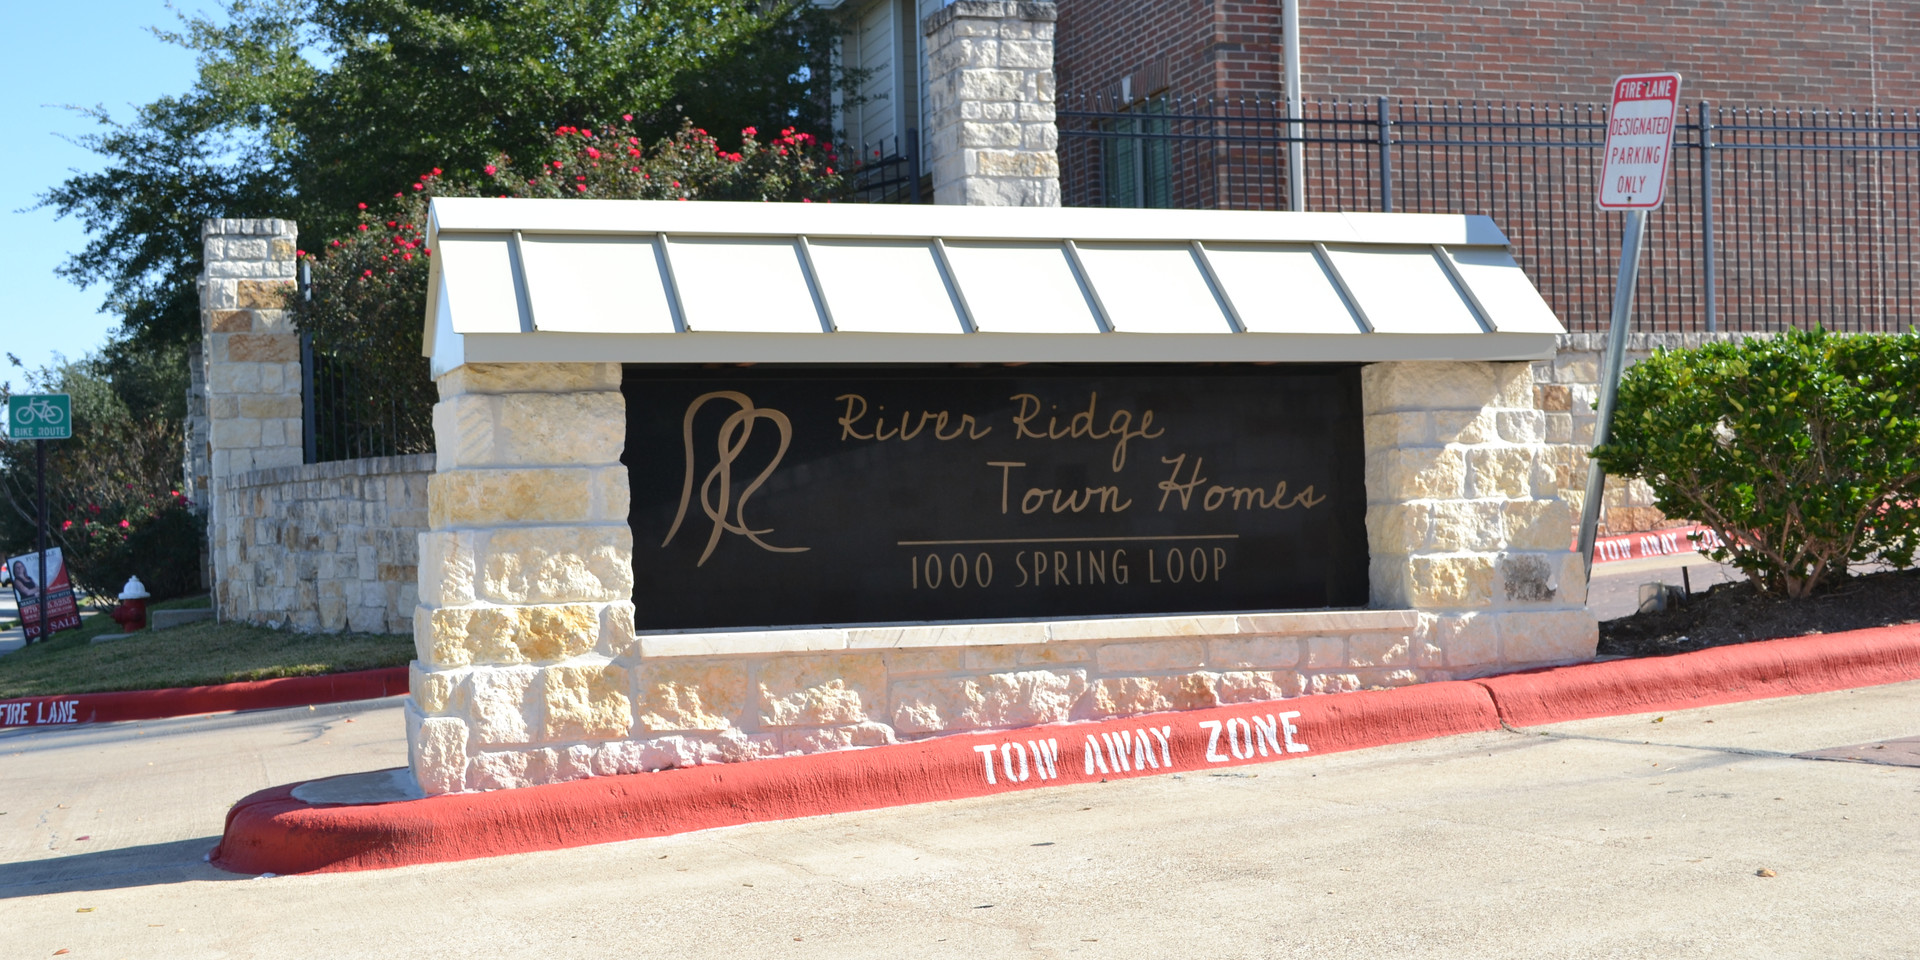 River Ridge Town Homes